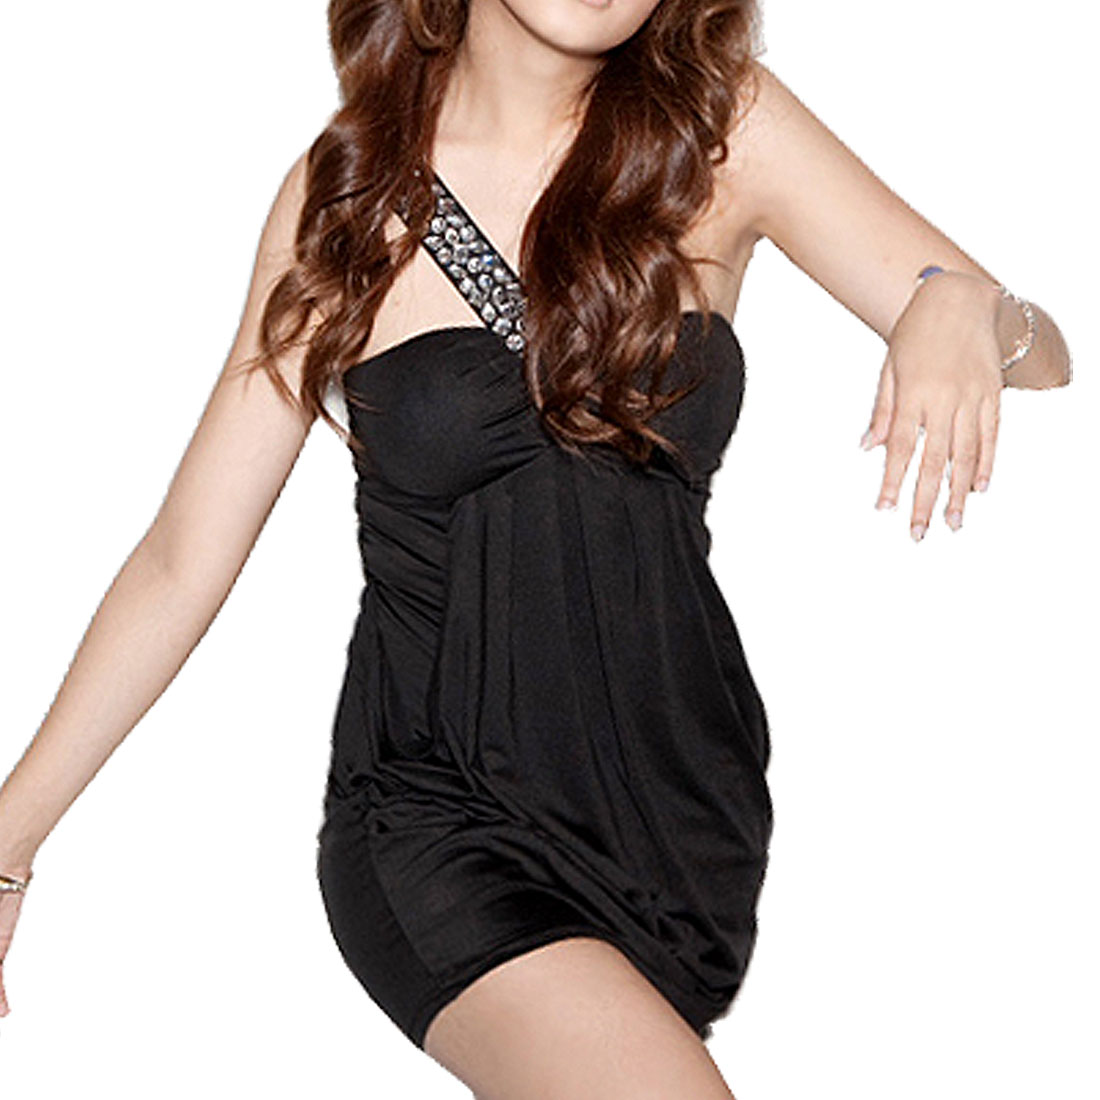 Black Padded Bust Crystal Decor Single Shoulder Strap Mini Dress for Lady XS